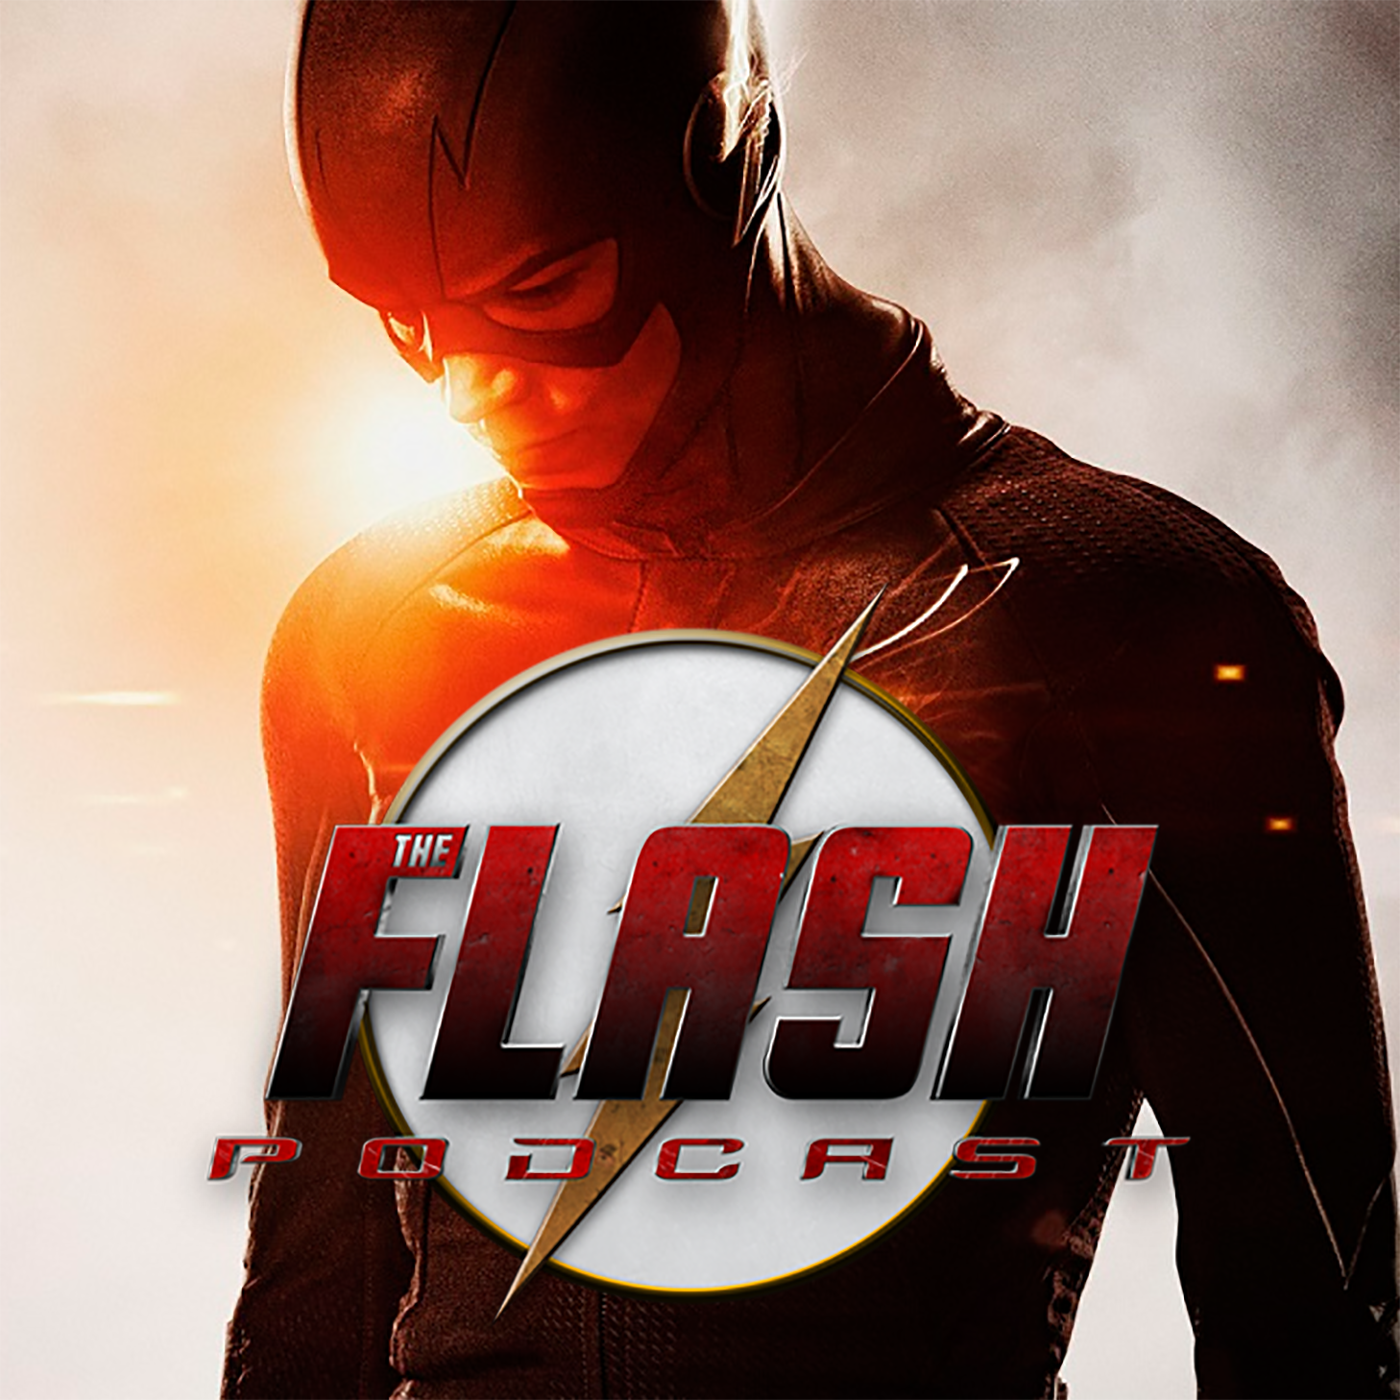 The Flash Podcast Season 2 – Episode 7: Gorilla Warfare